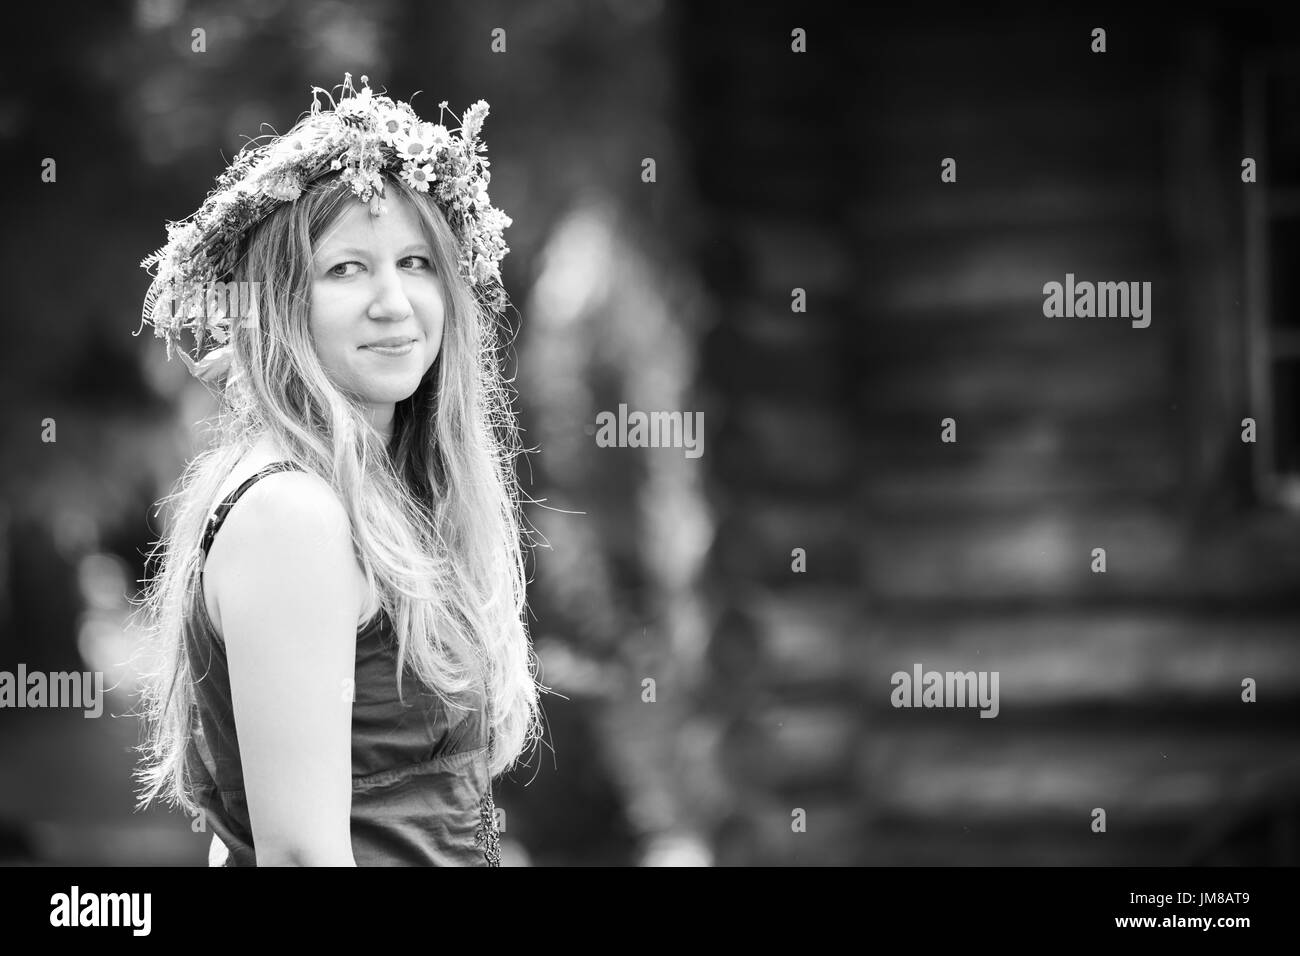 young blond adult woman with wreath on her head, black and white - Stock Image